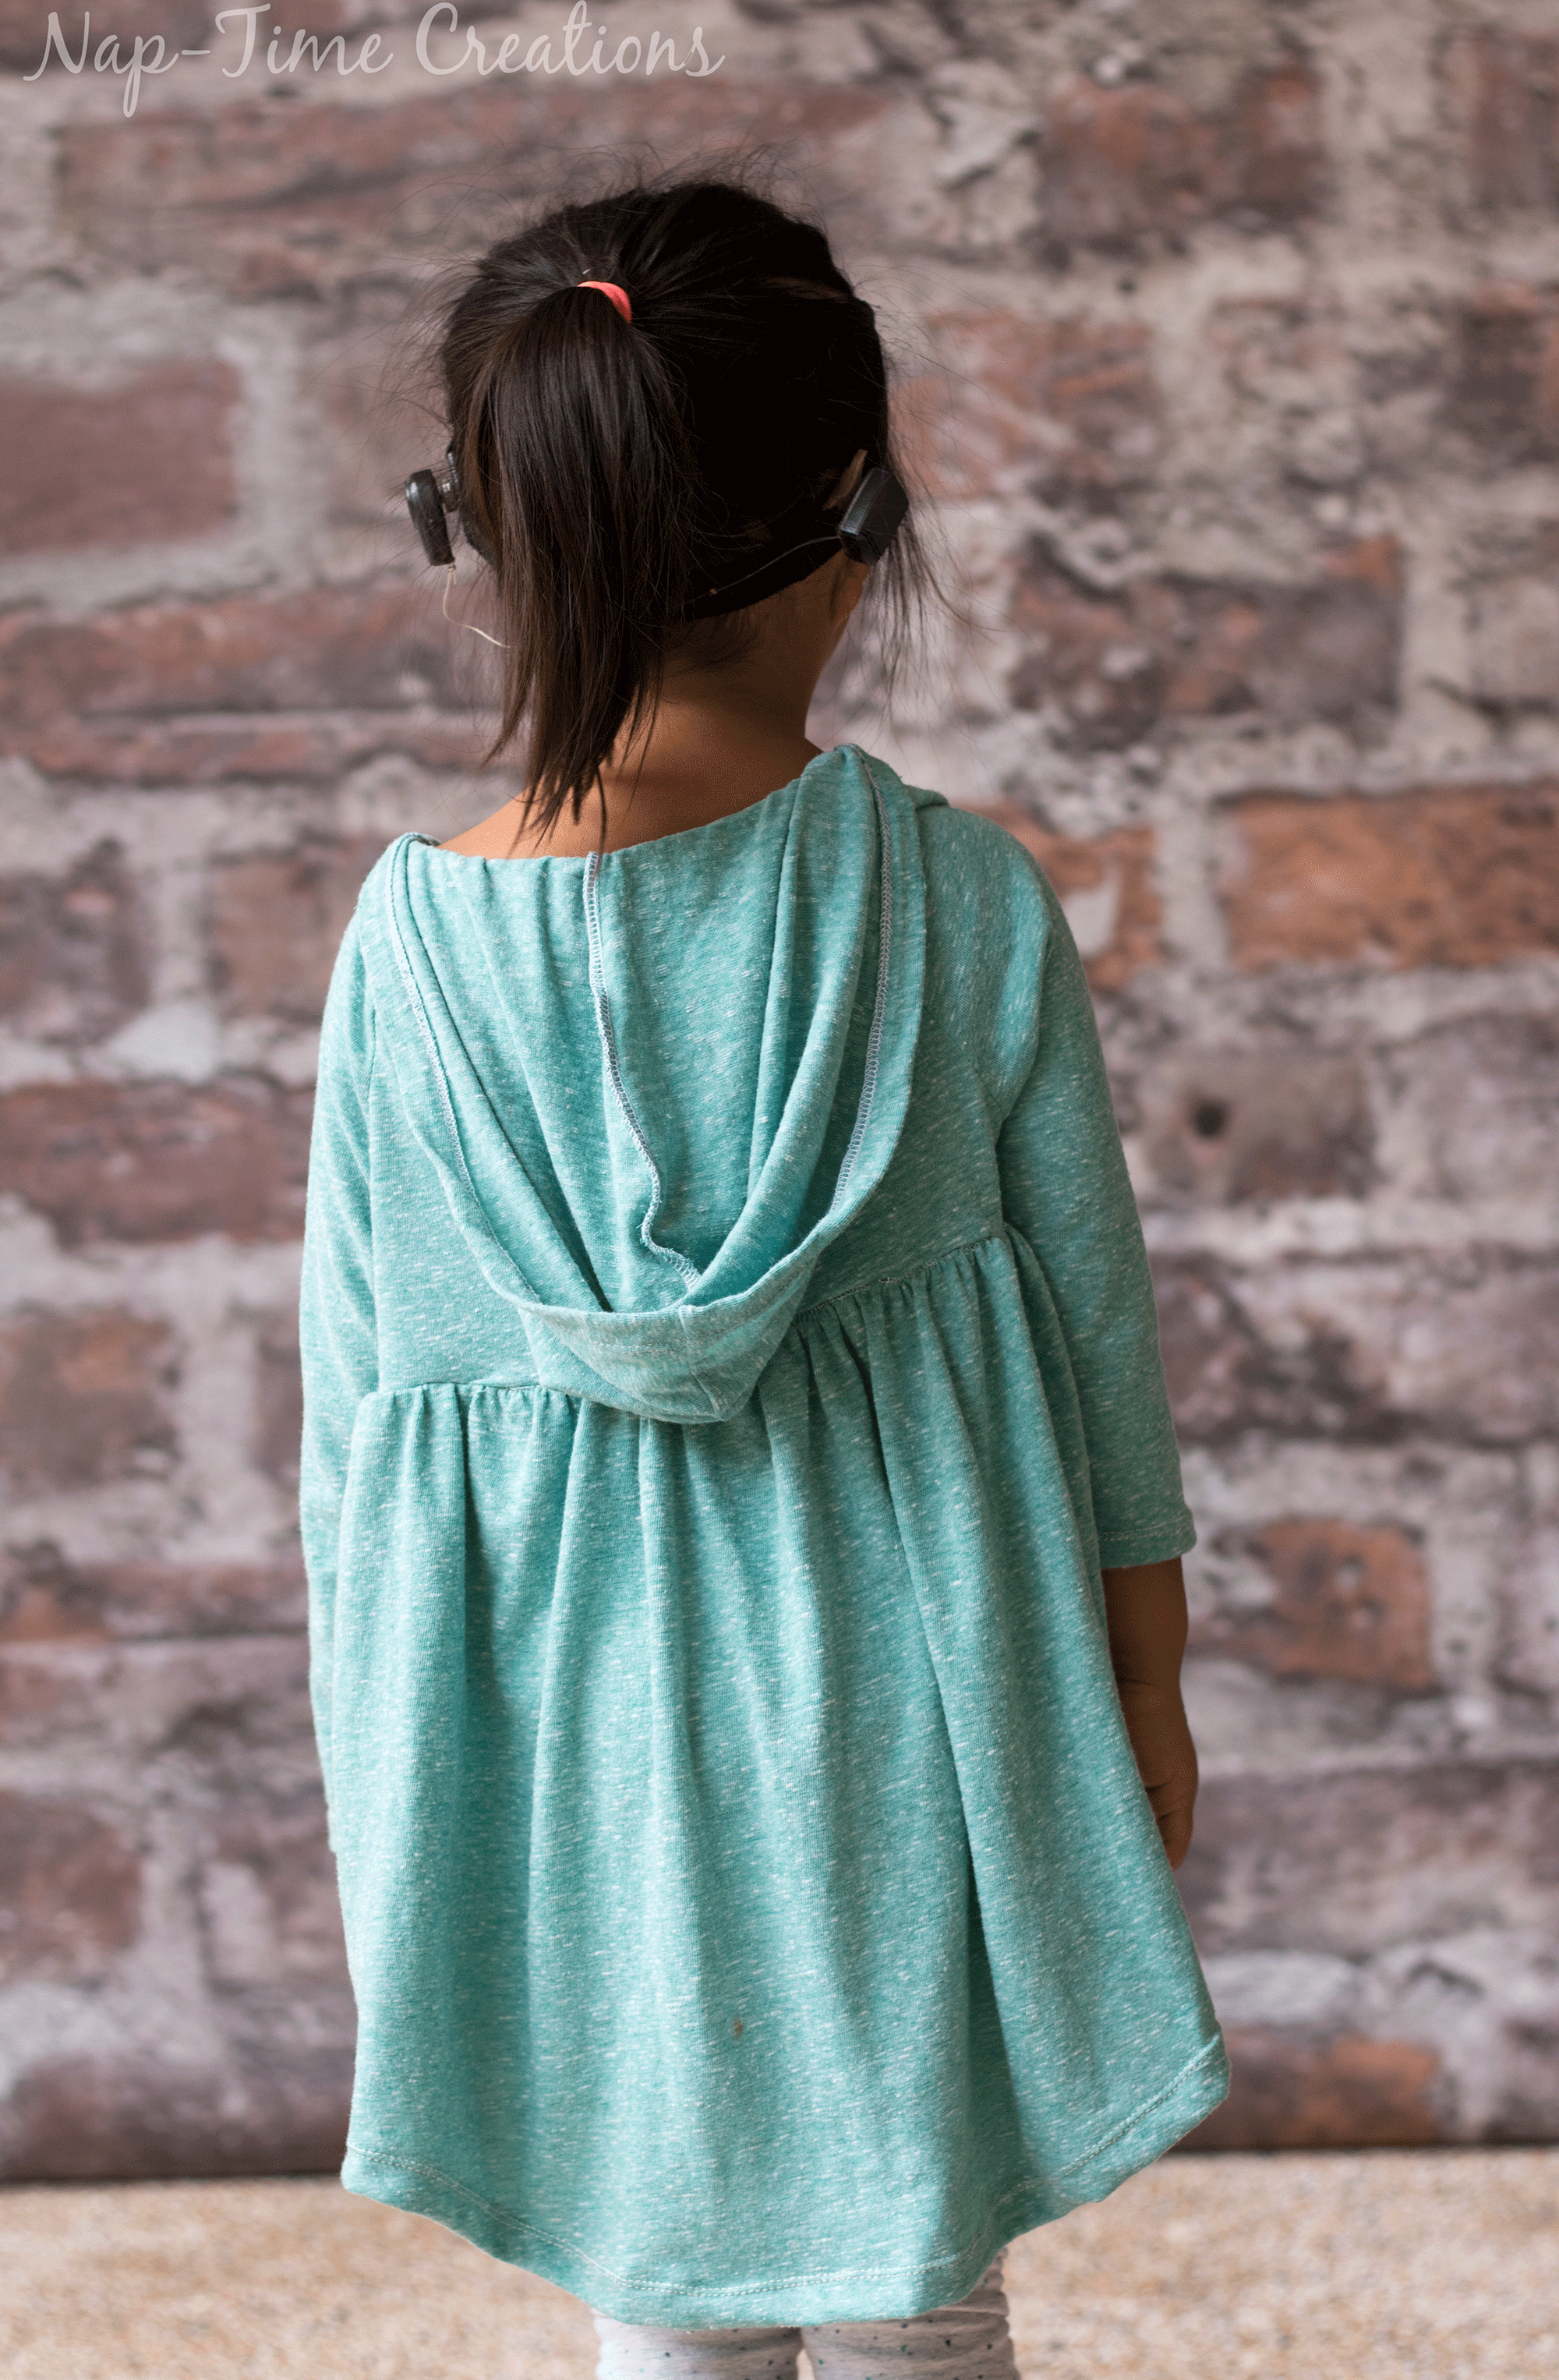 the-twirly-dress-tutorial-from-nap-time-creations